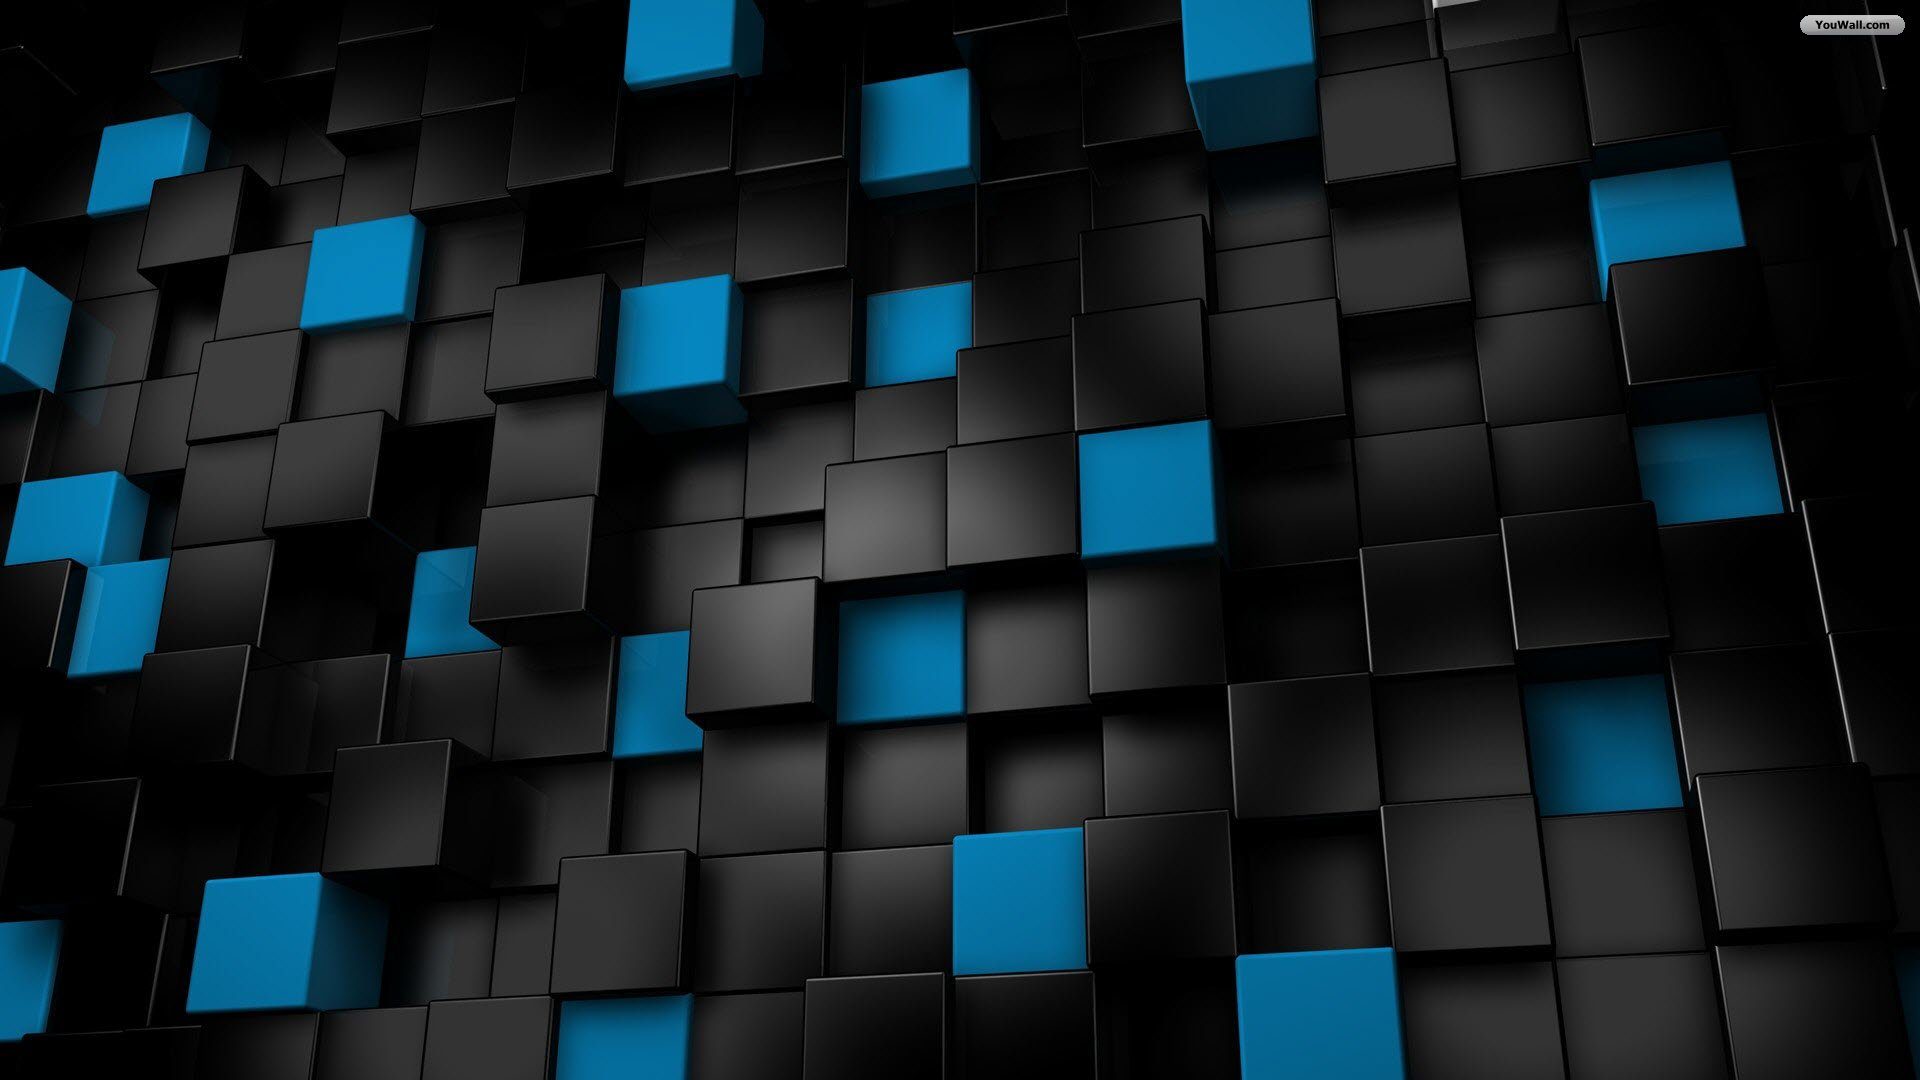 black and blue cubes desktop wallpaper download black and blue cubes 1920x1080